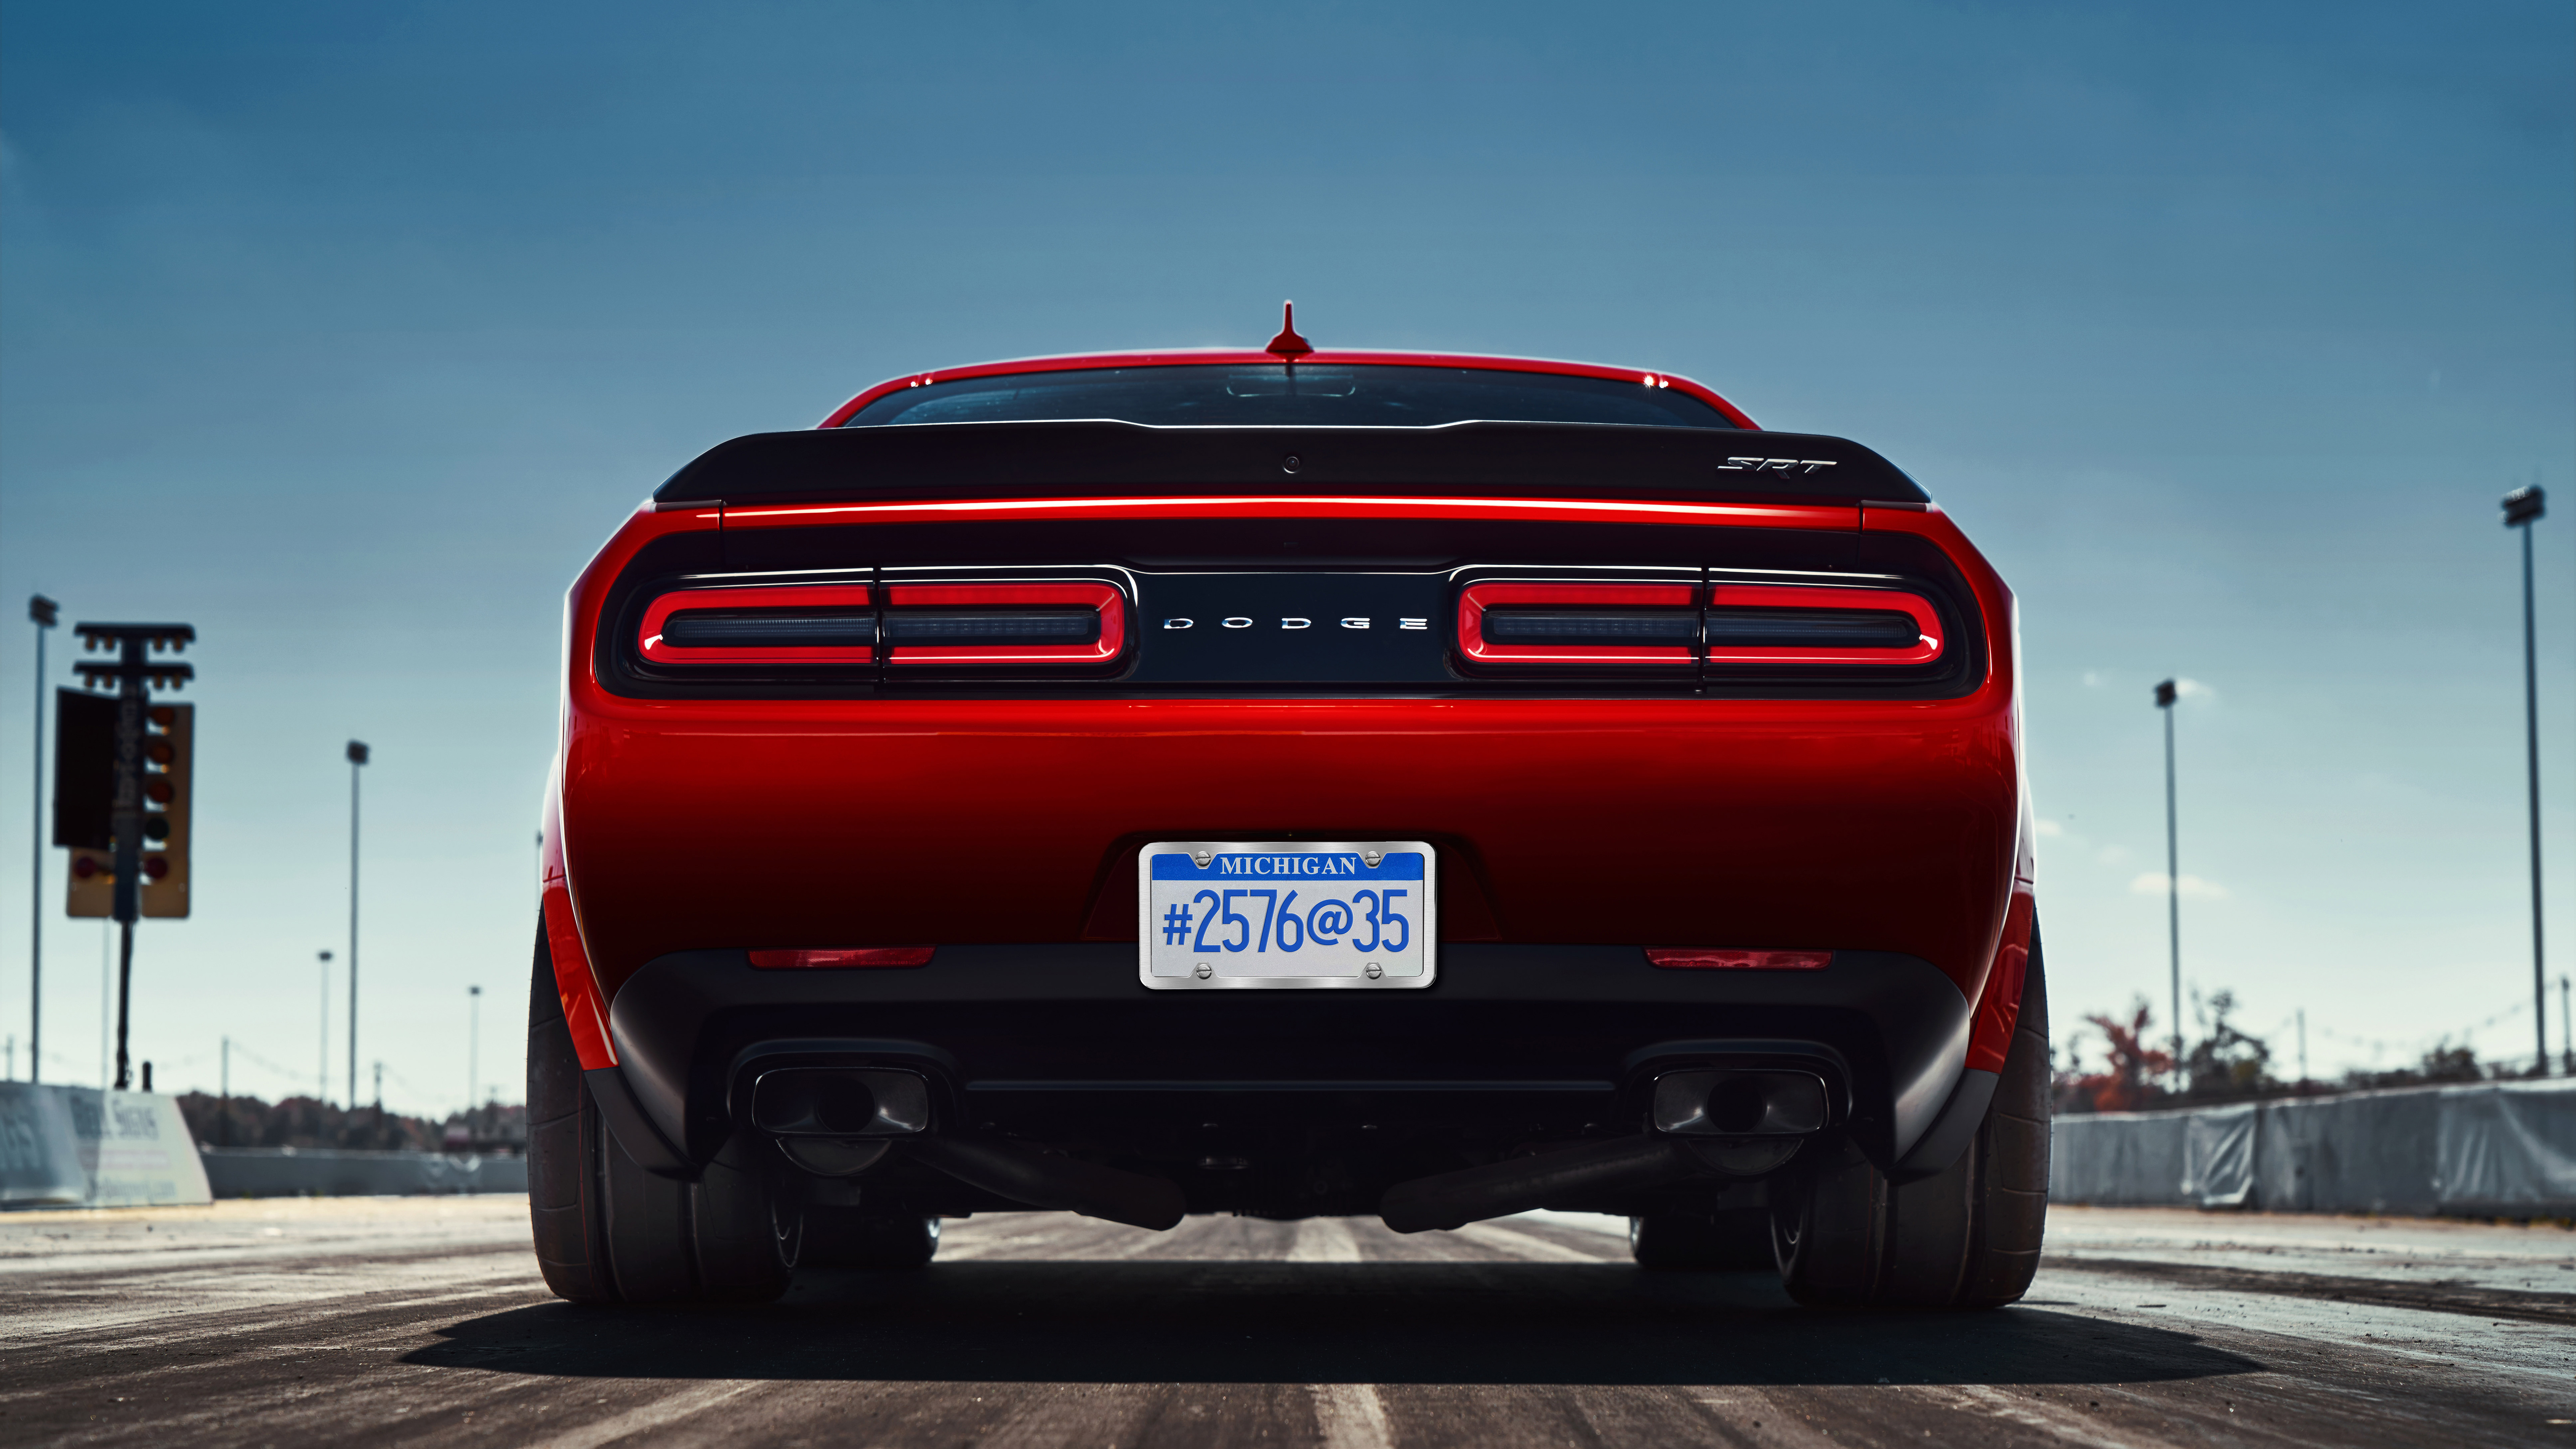 7680x4320 2018 Dodge Challenger SRT 8k HD 4k Wallpapers Images Backgrounds Photos And Pictures